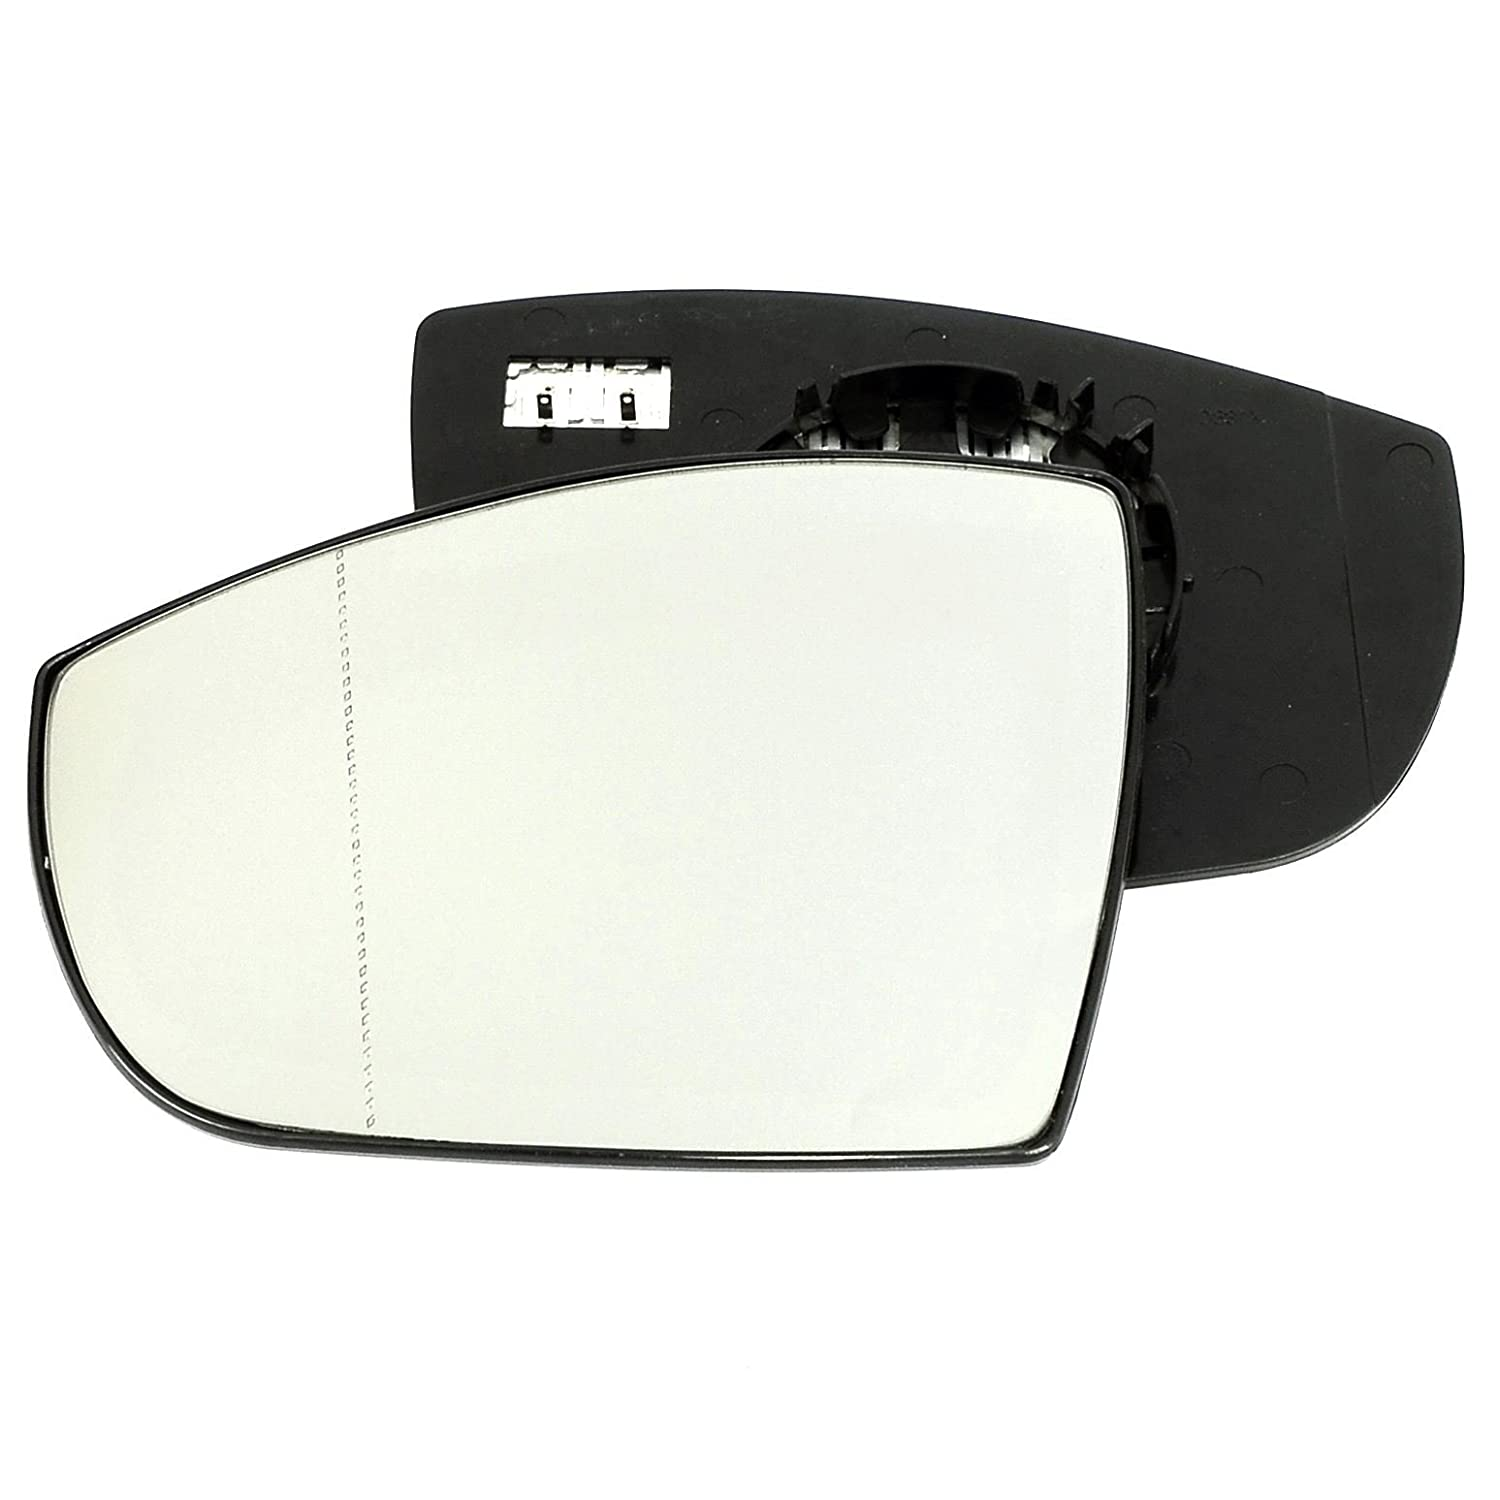 Passenger left hand side Heated wing door Silver mirror glass with backing plate #W-SHY/L-FDKUA08 [Clip On] Sylgab